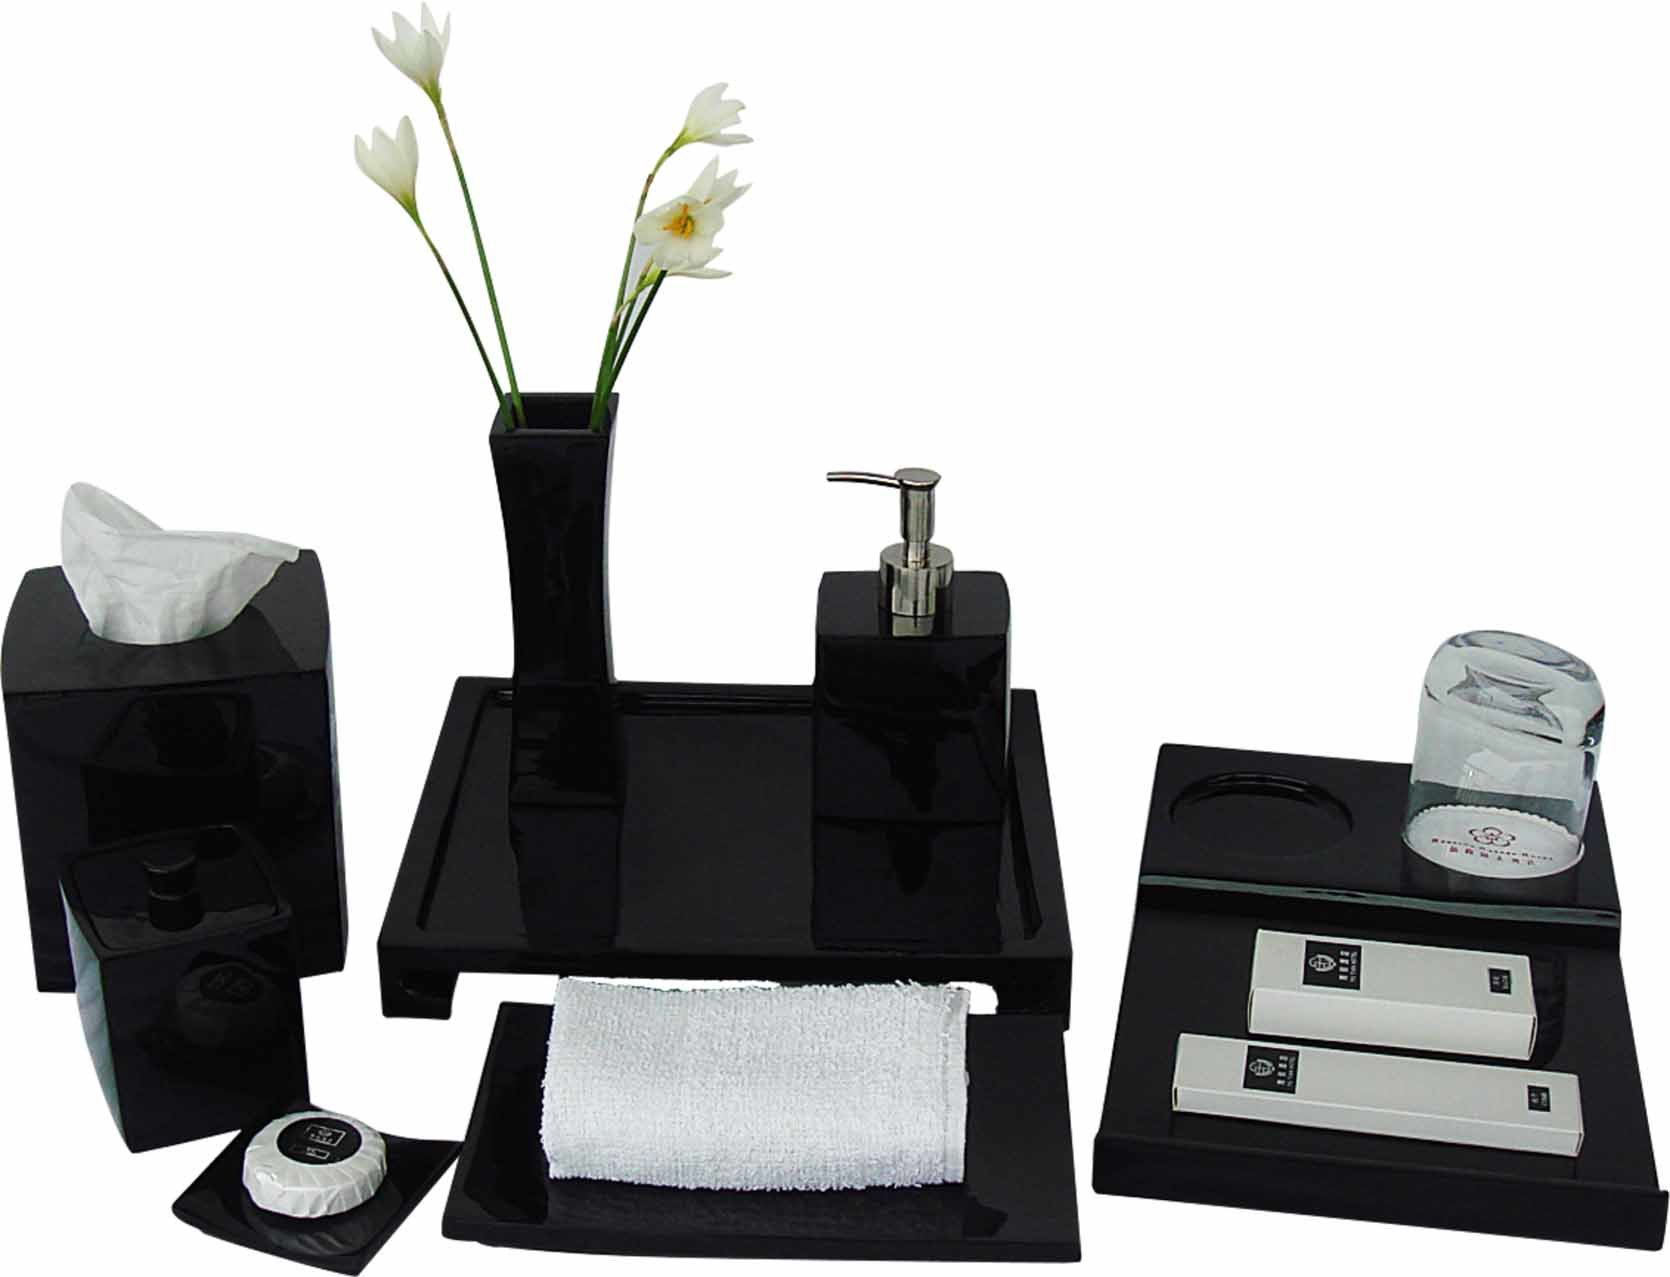 Black Finish Amenities Holder Set Hotel Balfour Price Bathroom Accessories pictures & photos